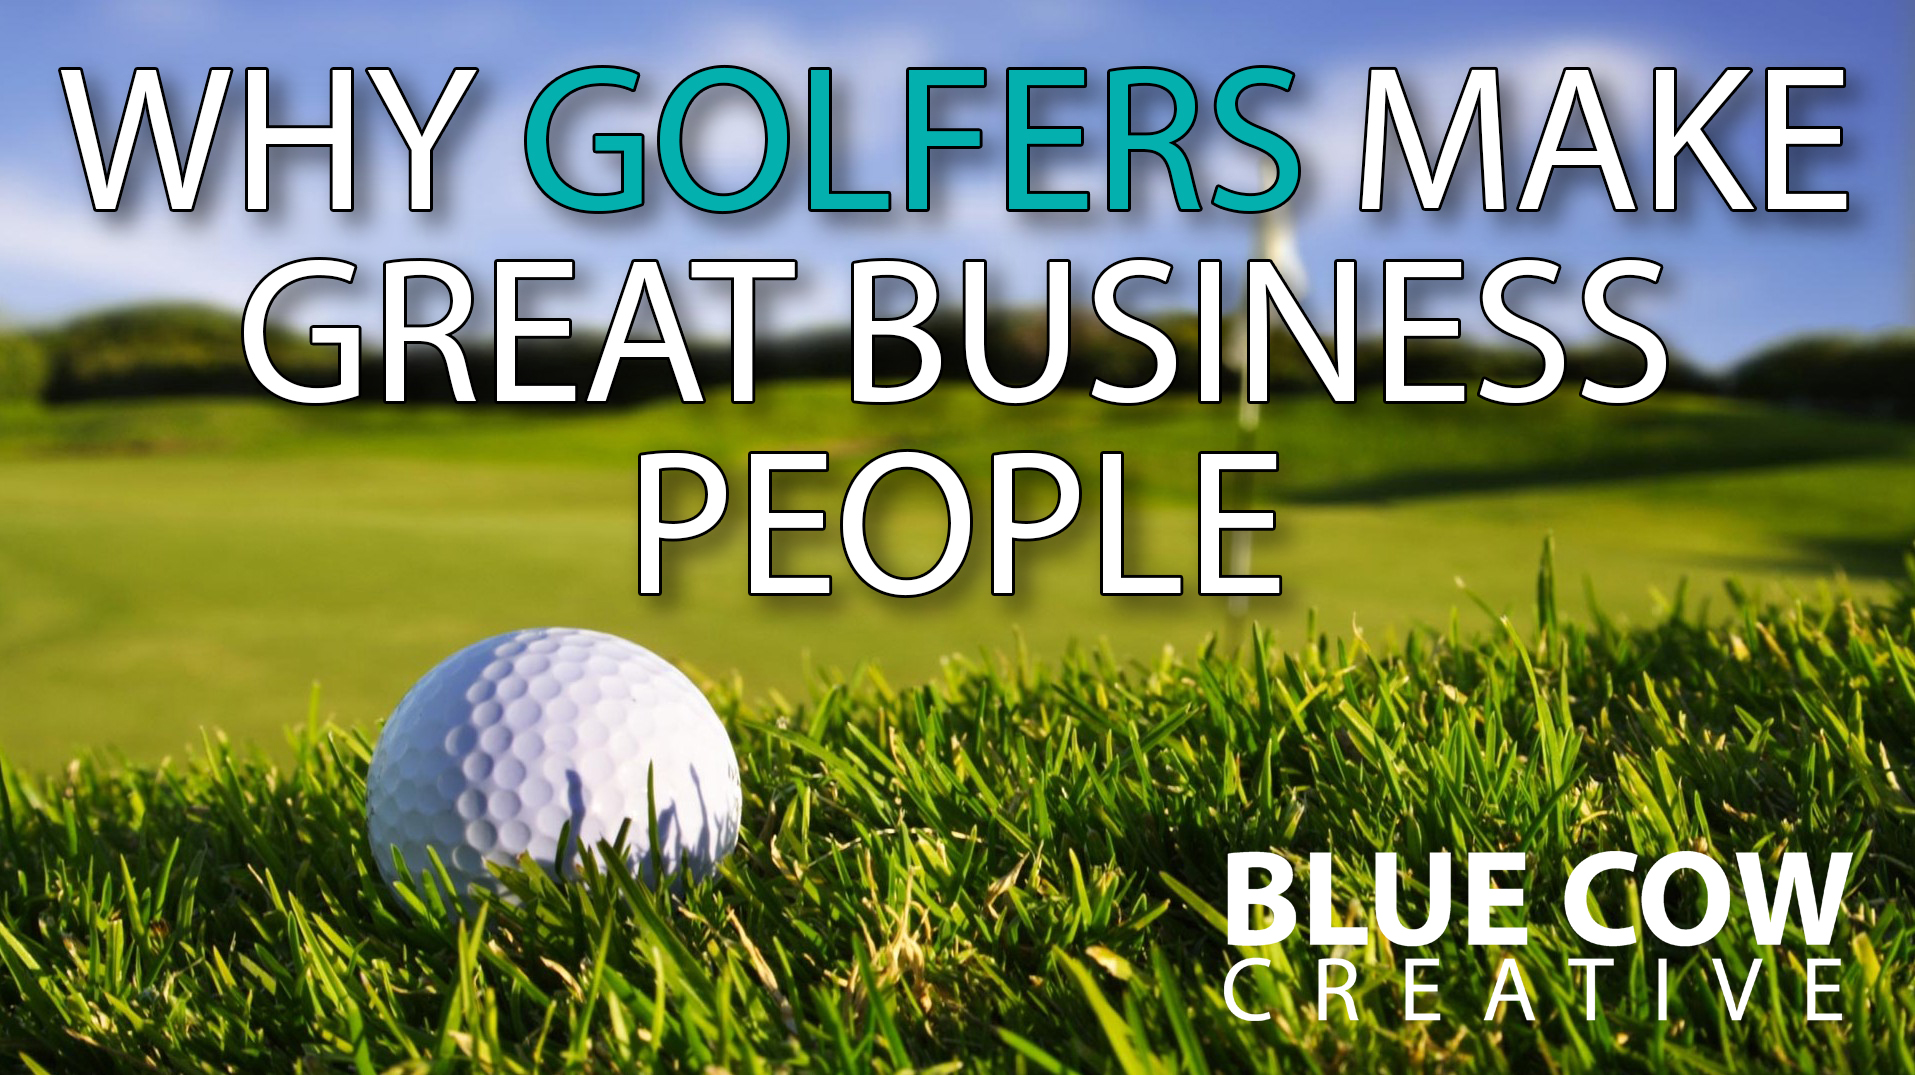 Why Golfers Make Great Business People